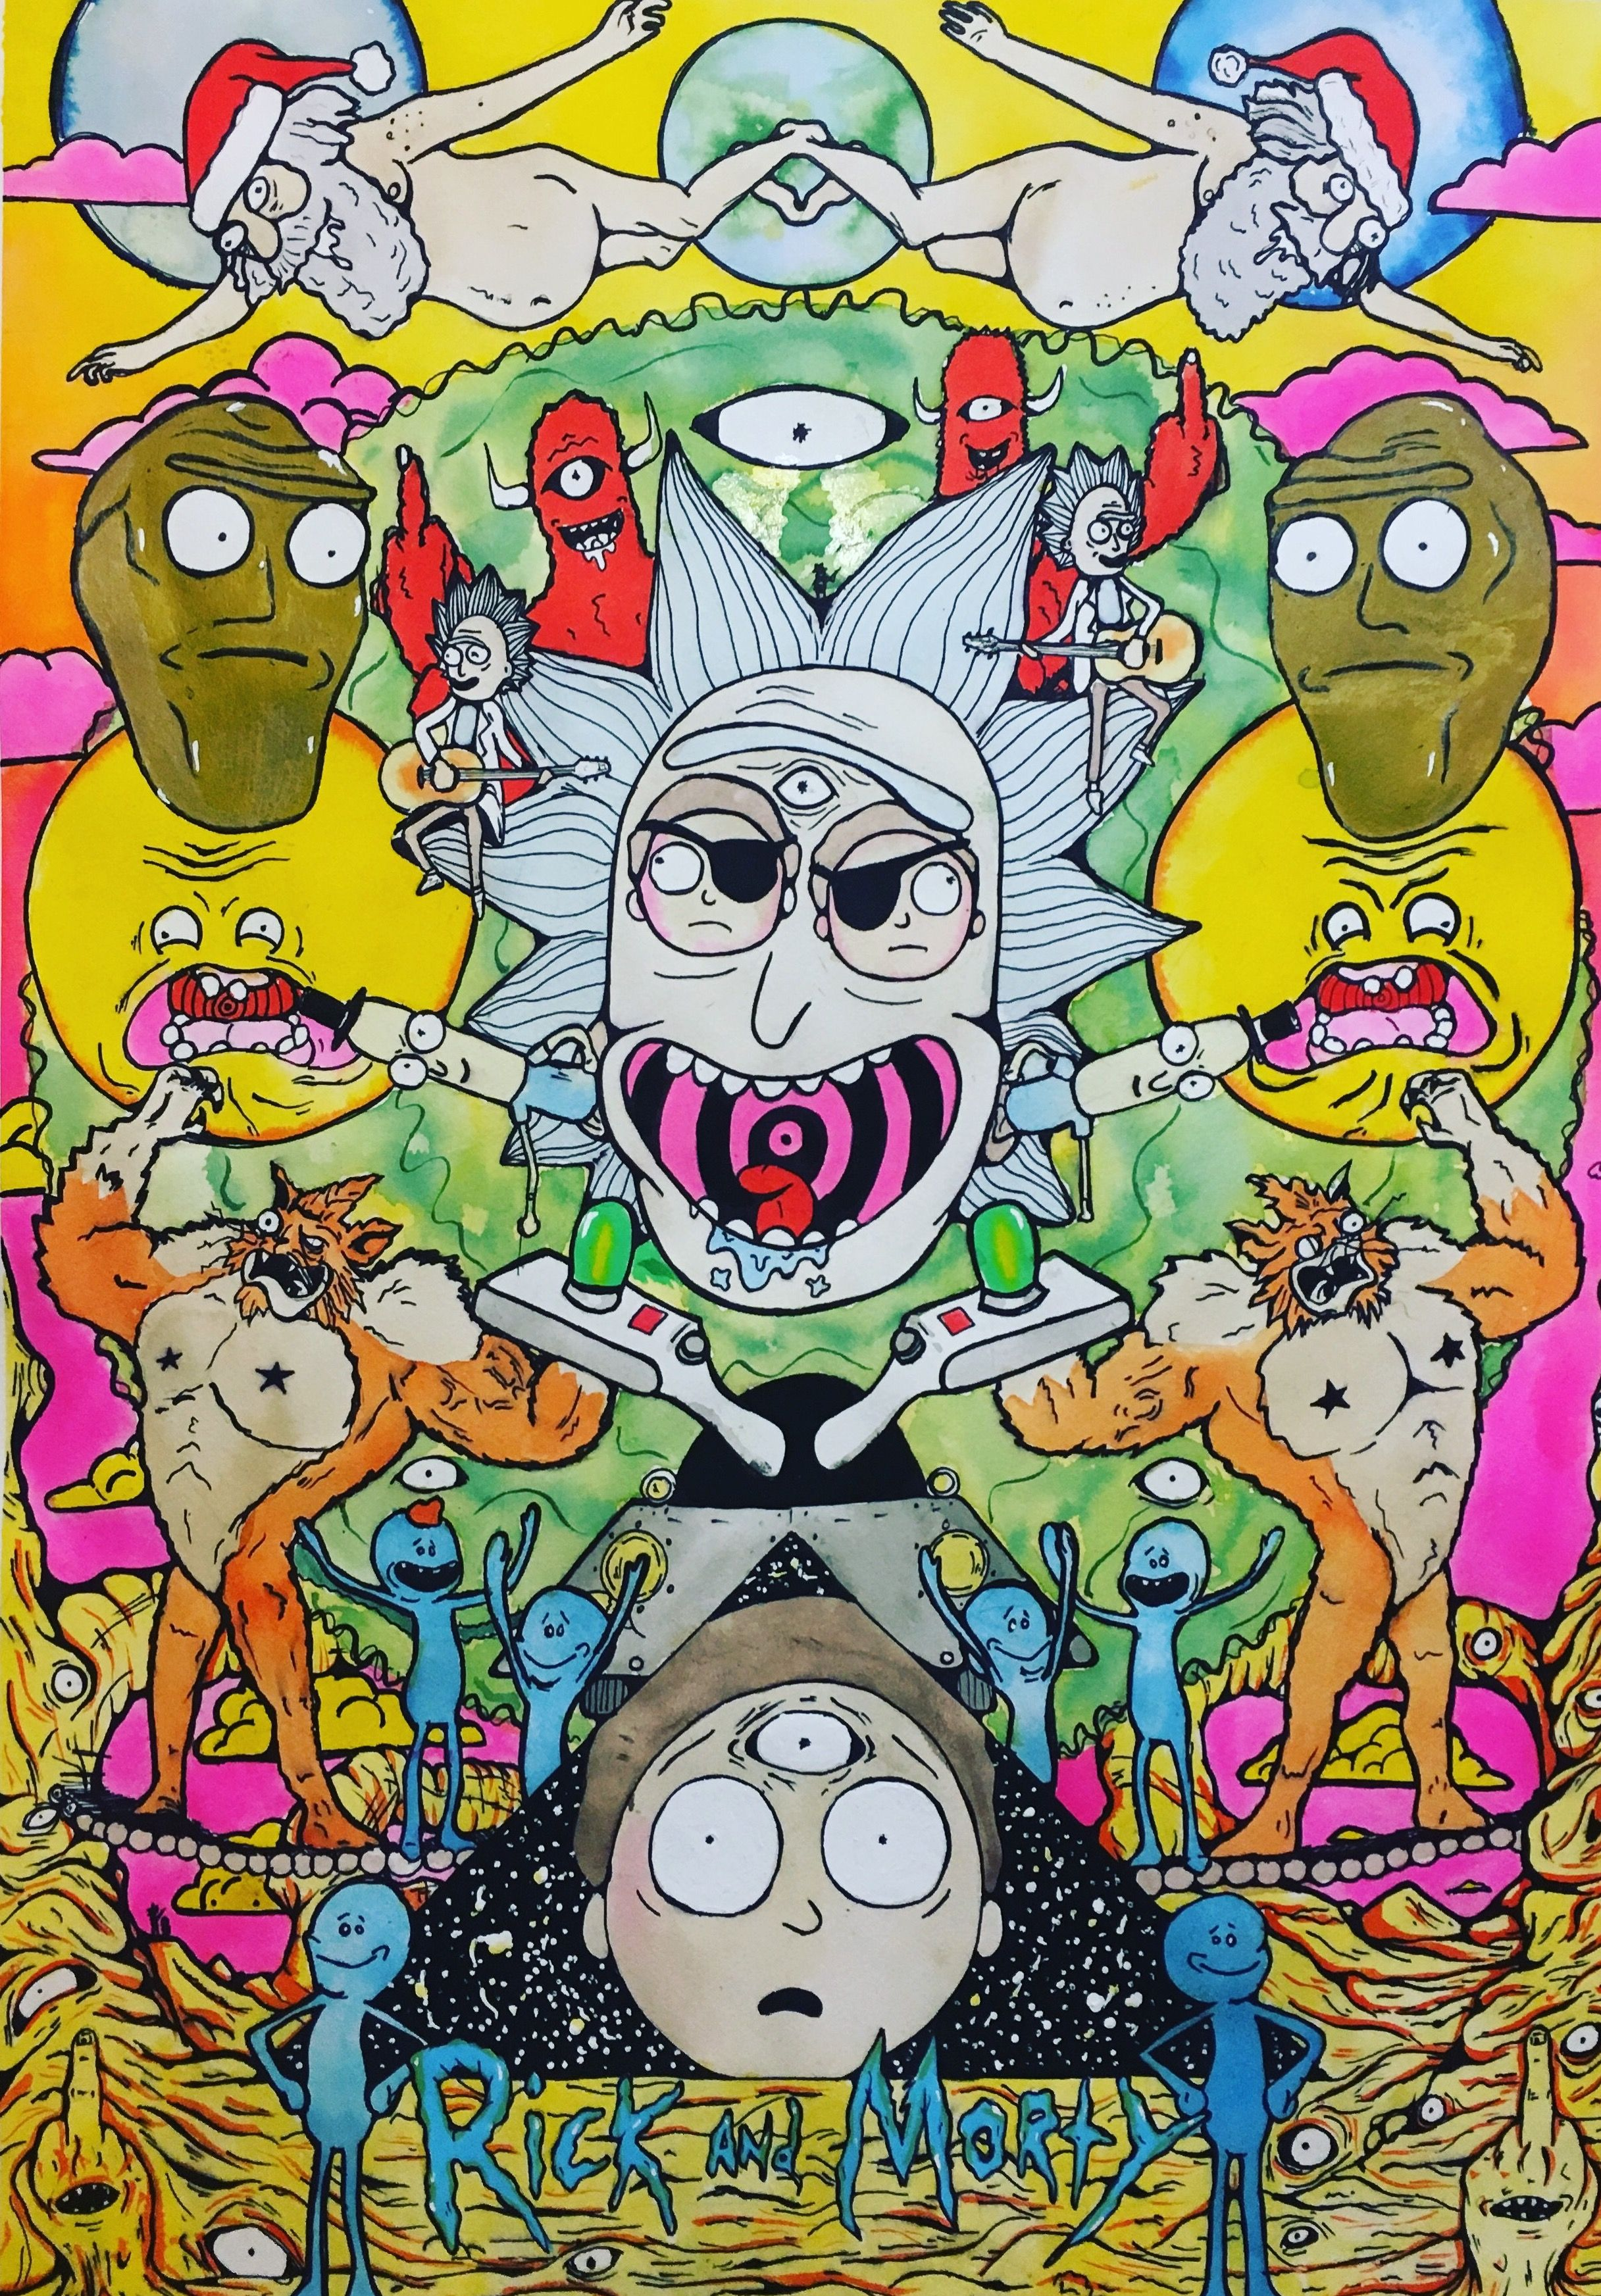 Rick And Morty Tribute Rick And Morty Poster Trippy Backgrounds Rick And Morty Drawing Iphone trippy rick and morty wallpaper